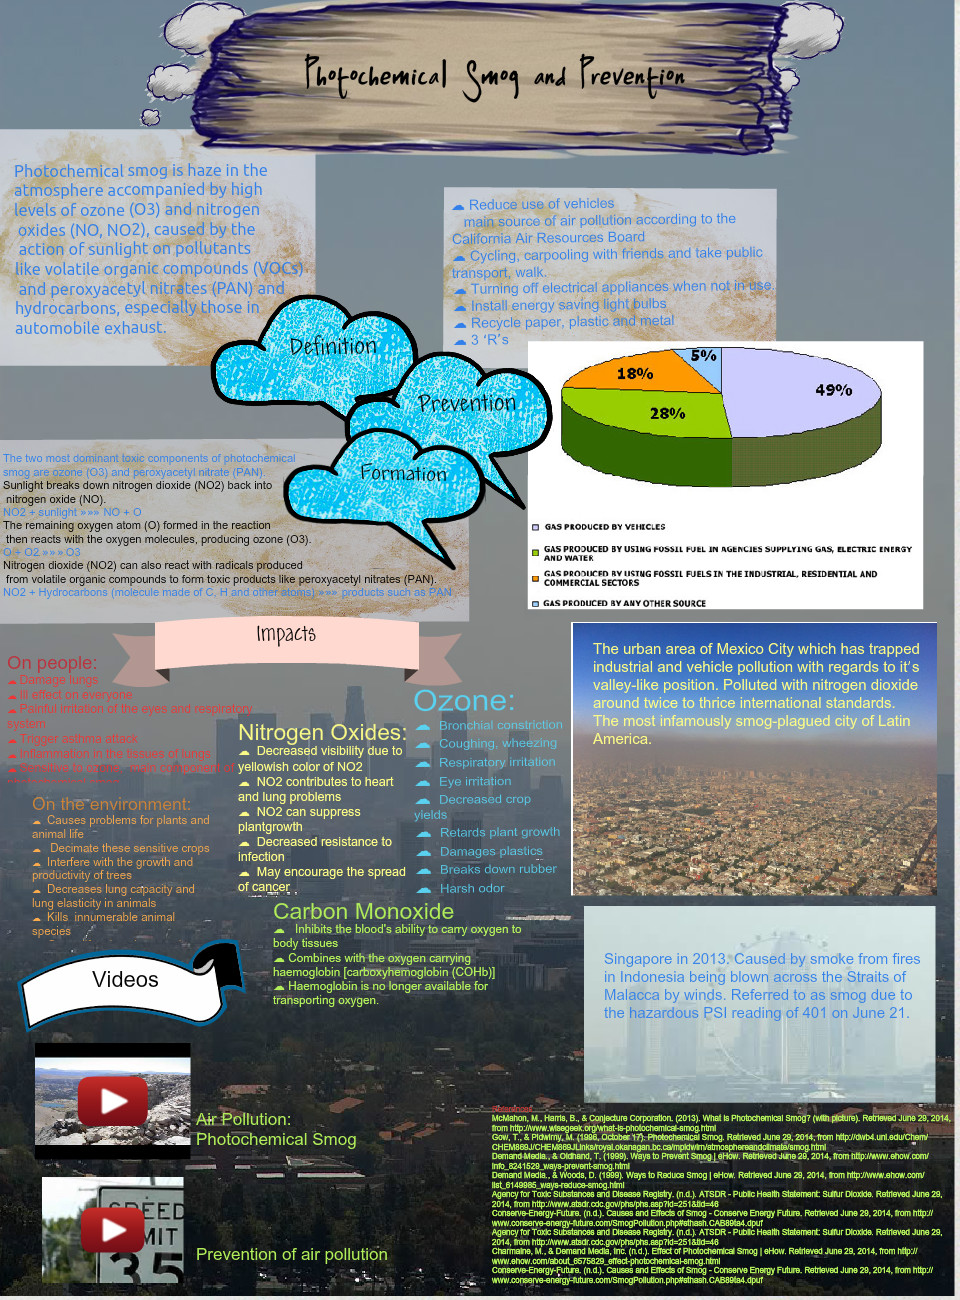 Photochemical Smog and Prevention